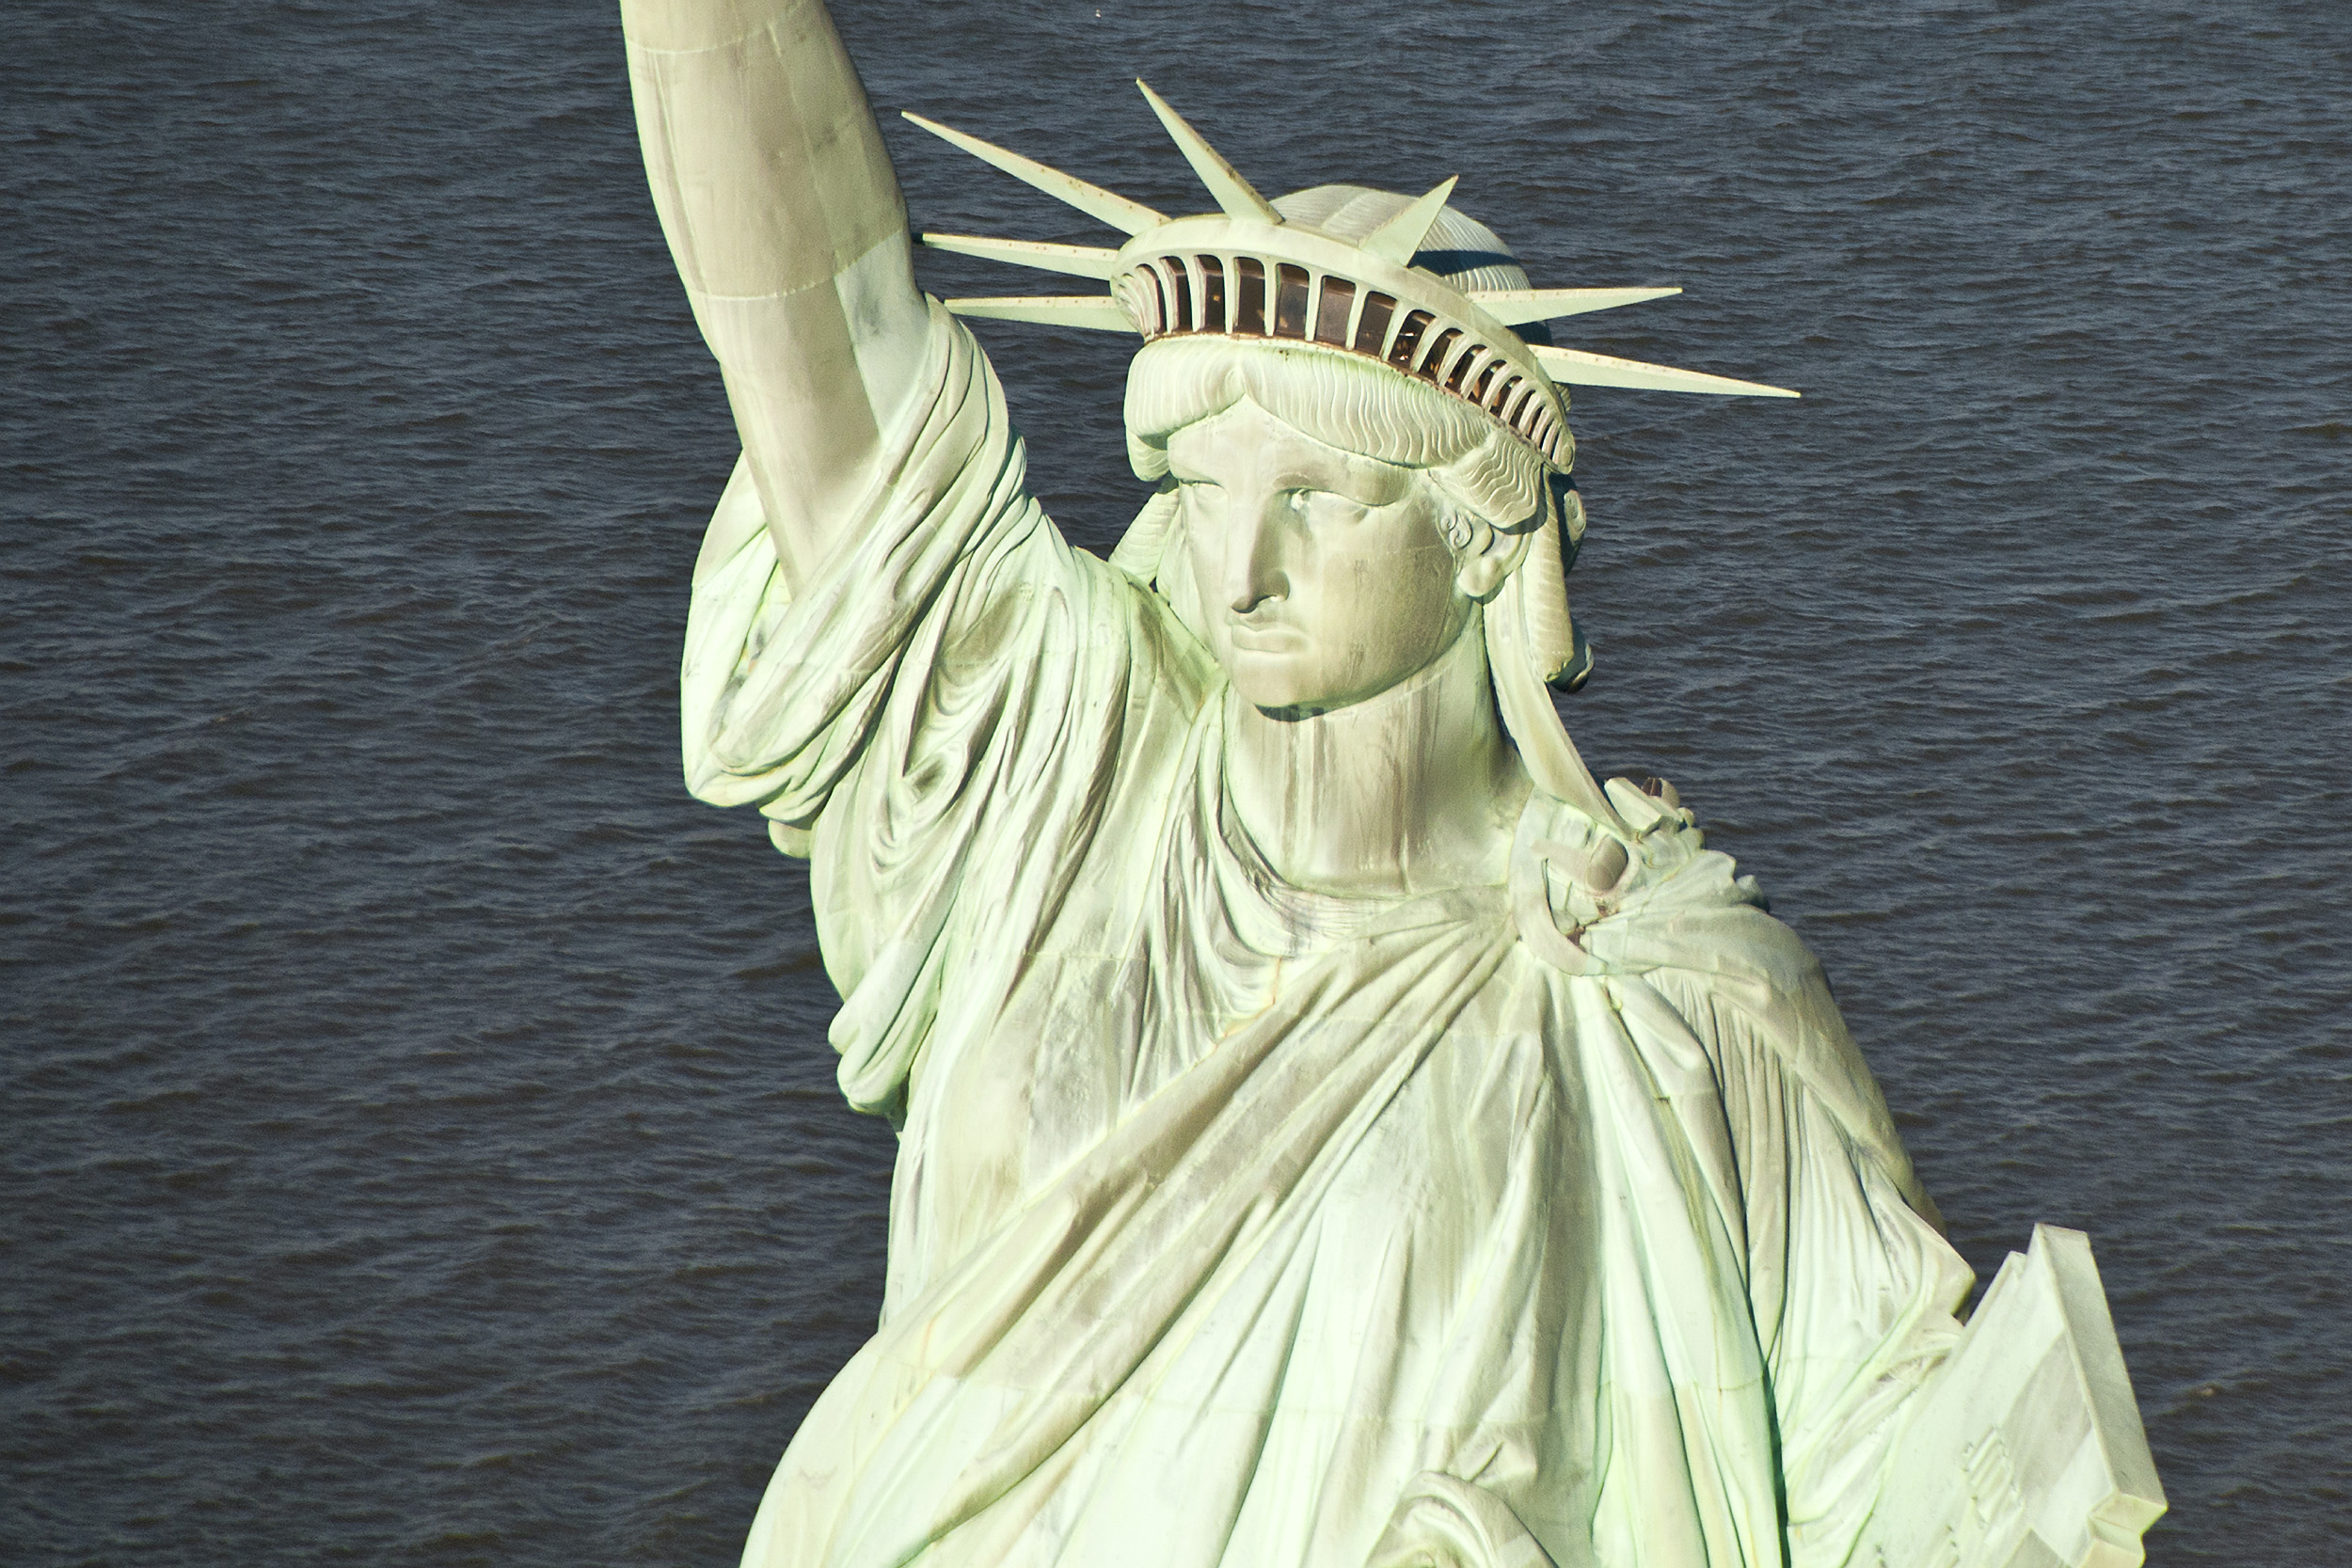 Statue of Liberty by Helicopter